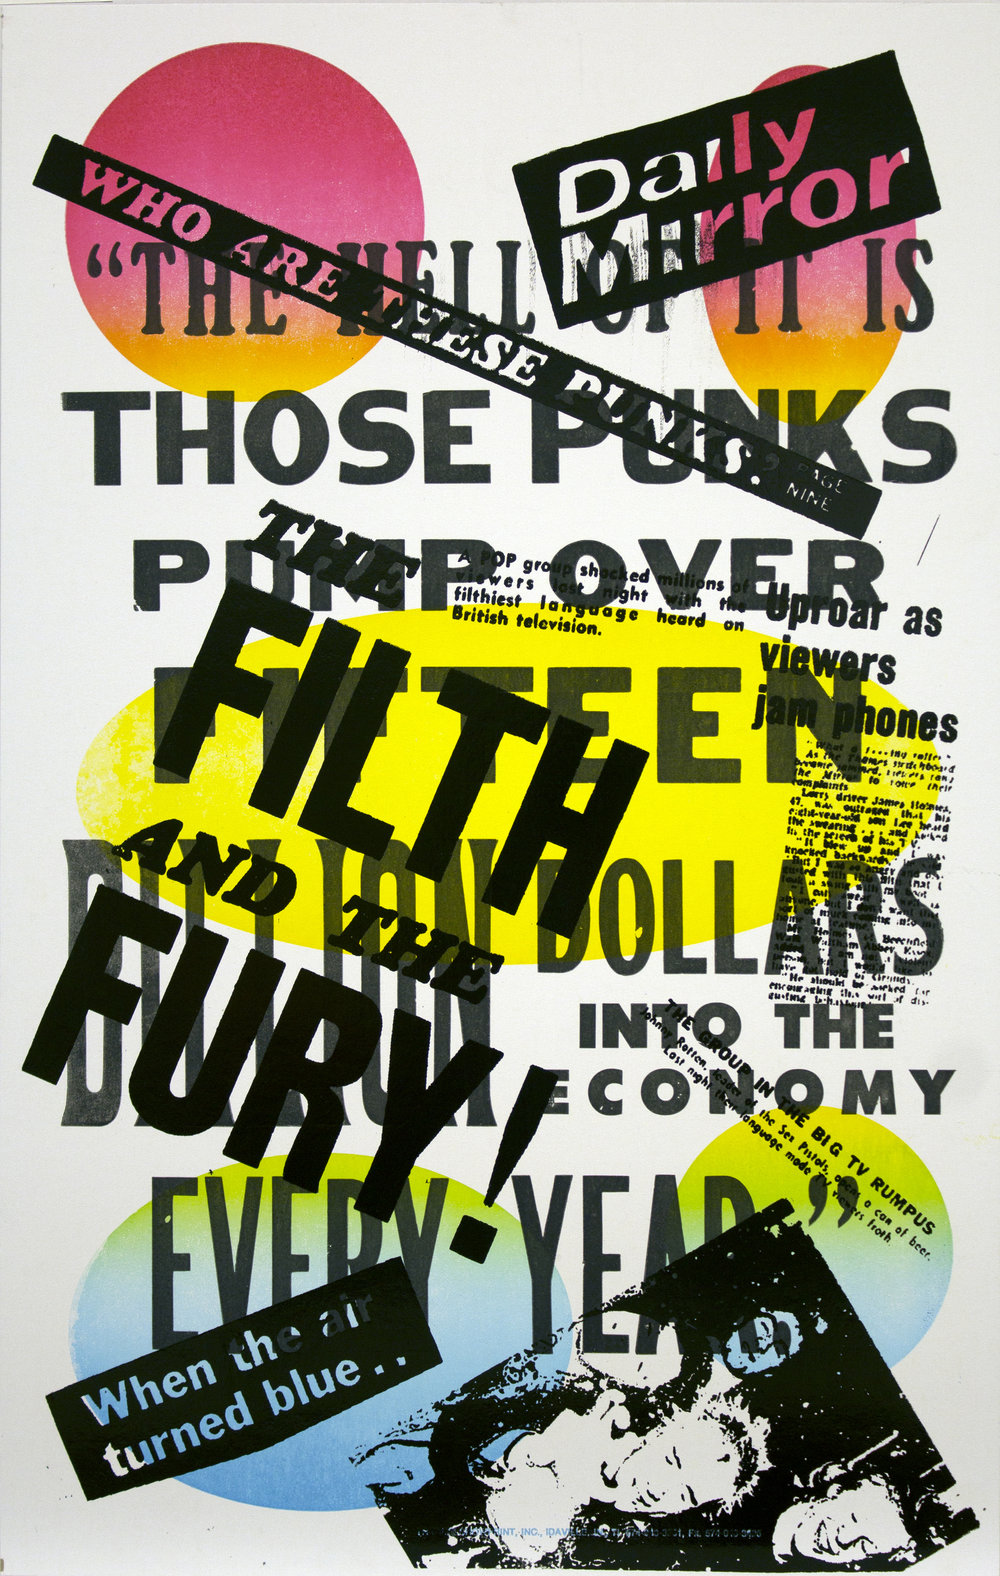 Christopher Michlig and Jan Tumlir,  Adventures in Over-Extension 3: Cash from Chaos (THE HELL OF IT IS THOSE PUNKS PUMP OVER FIFTEEN BILLION DOLLARS INTO THE ECONOMY EVERY YEAR) , 2017. Silkscreen and letterpress on poster board, 14 x 22 inches